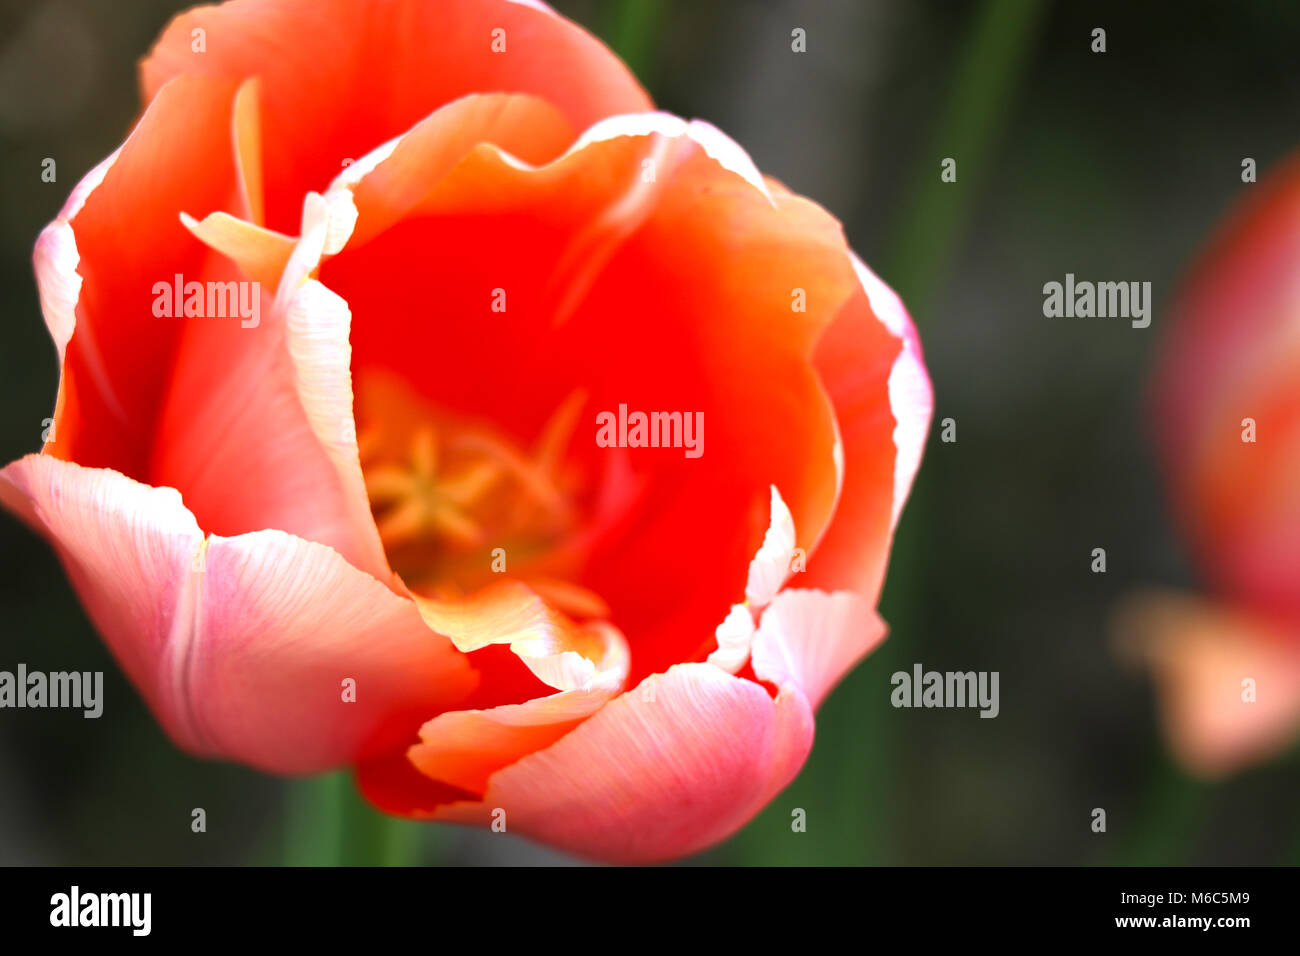 Closed flower buds stock photos closed flower buds stock images beautiful flowers in nature closed view of flowers stock image izmirmasajfo